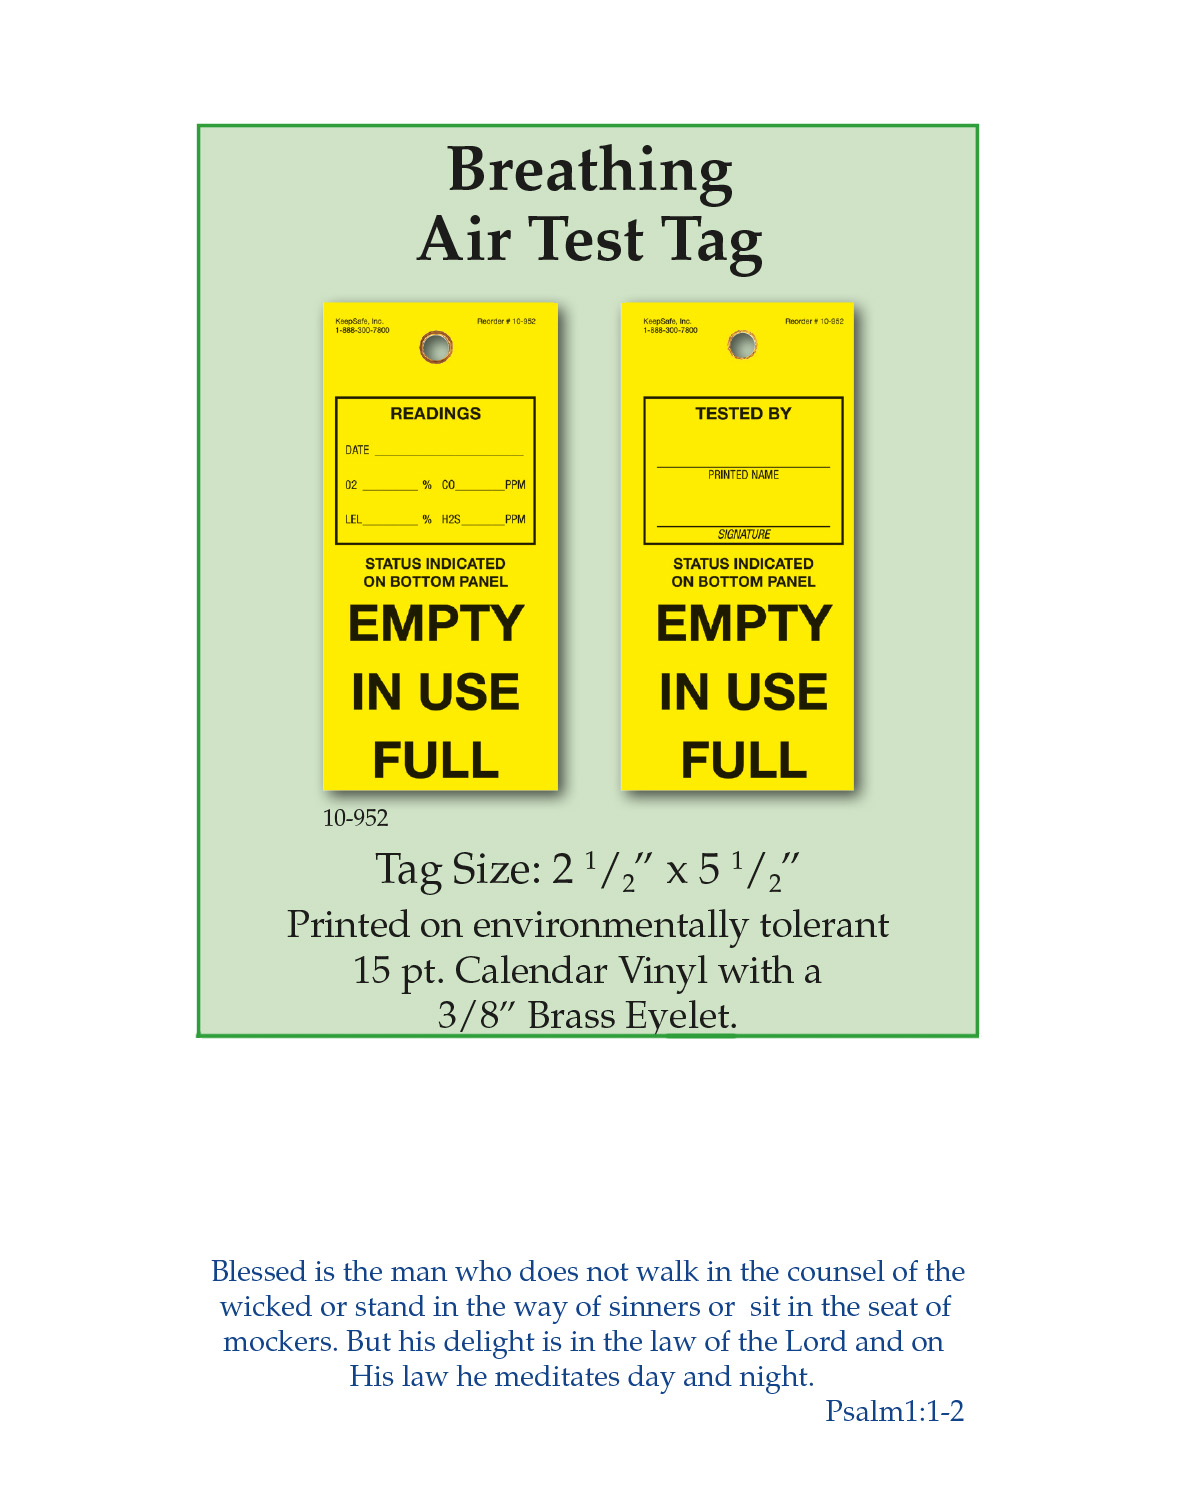 Breathing Air Test Tag